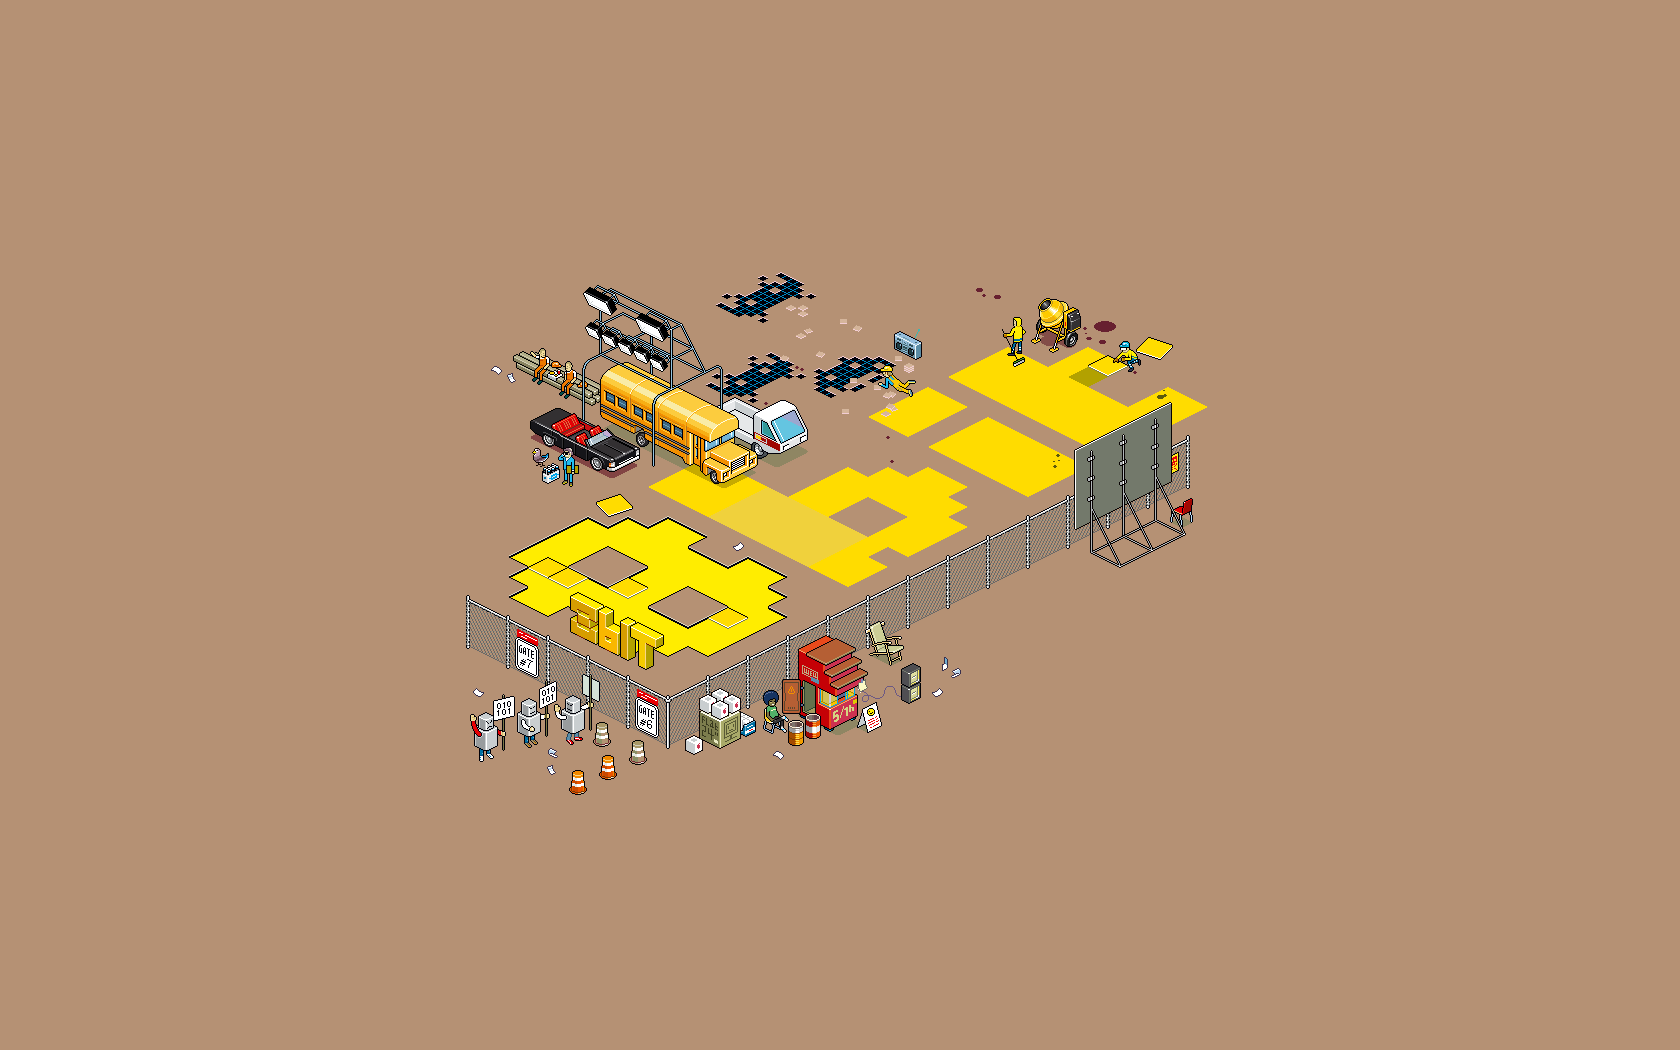 3d Dessin Facile Fond D 39écran Illustration Fond Simple Pixel Art